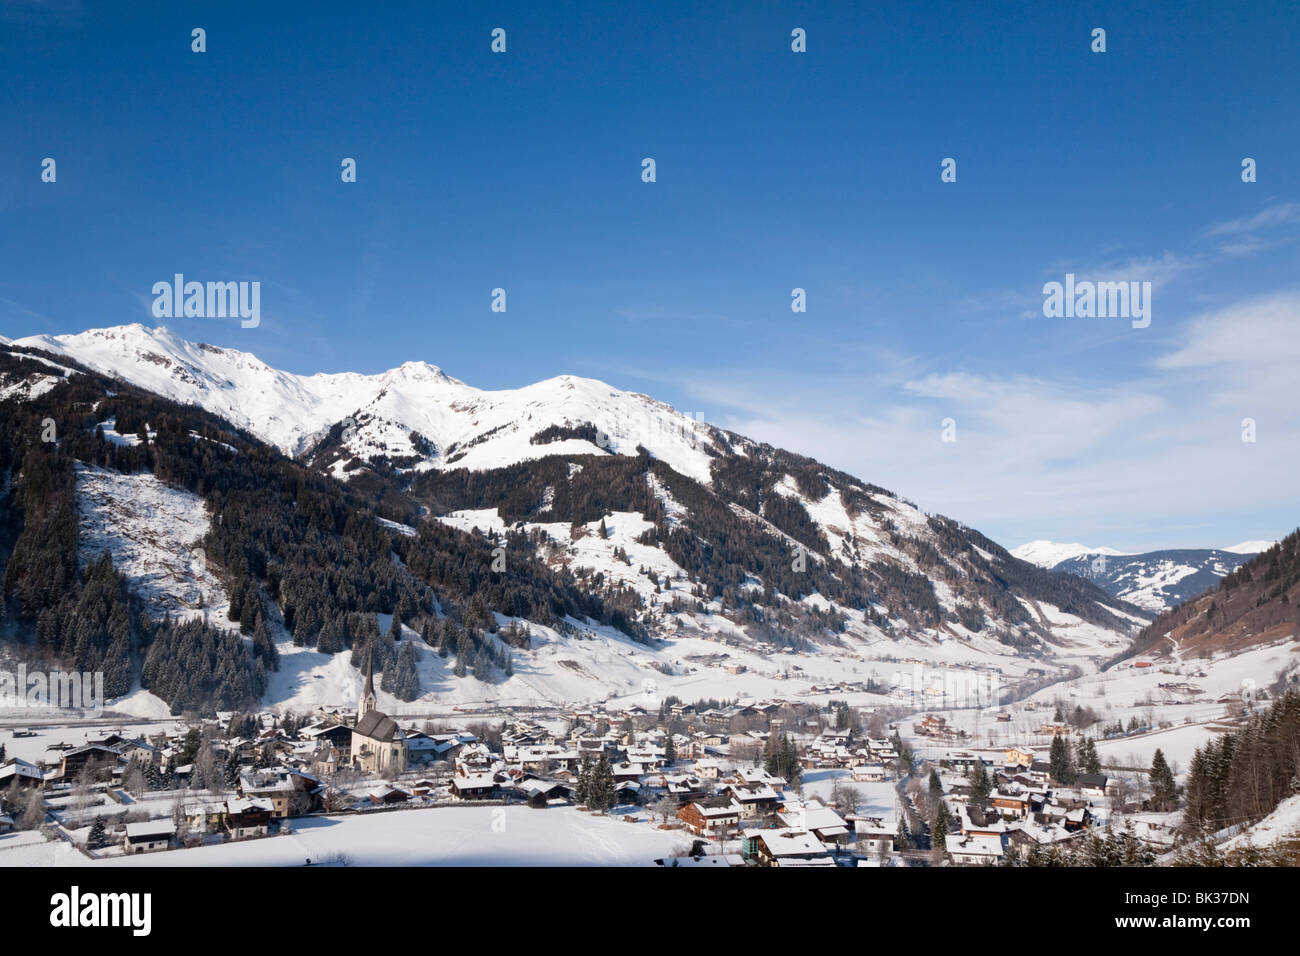 Alpine ski resort in Austrian Alps with snow in Rauriser Sonnen Valley and on Sonniblick Mountains in winter, Rauris, Stock Photo